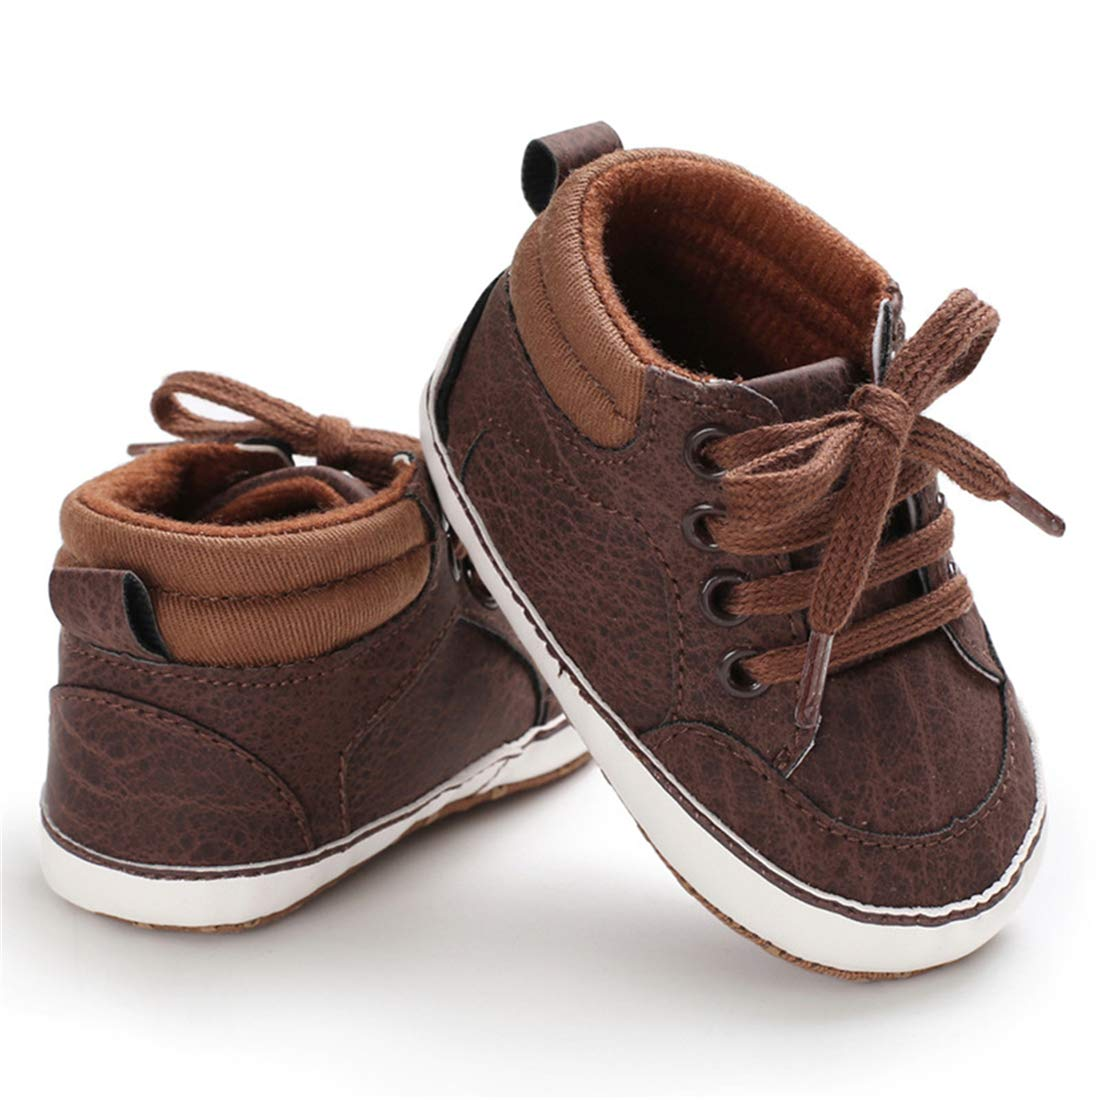 COSANKIM Infant Baby Boys Girls Shoes Soft Sole High-Top Ankle Sneakers Newborn Toddler First Walker Crib Tennis Shoes 0-18 Months